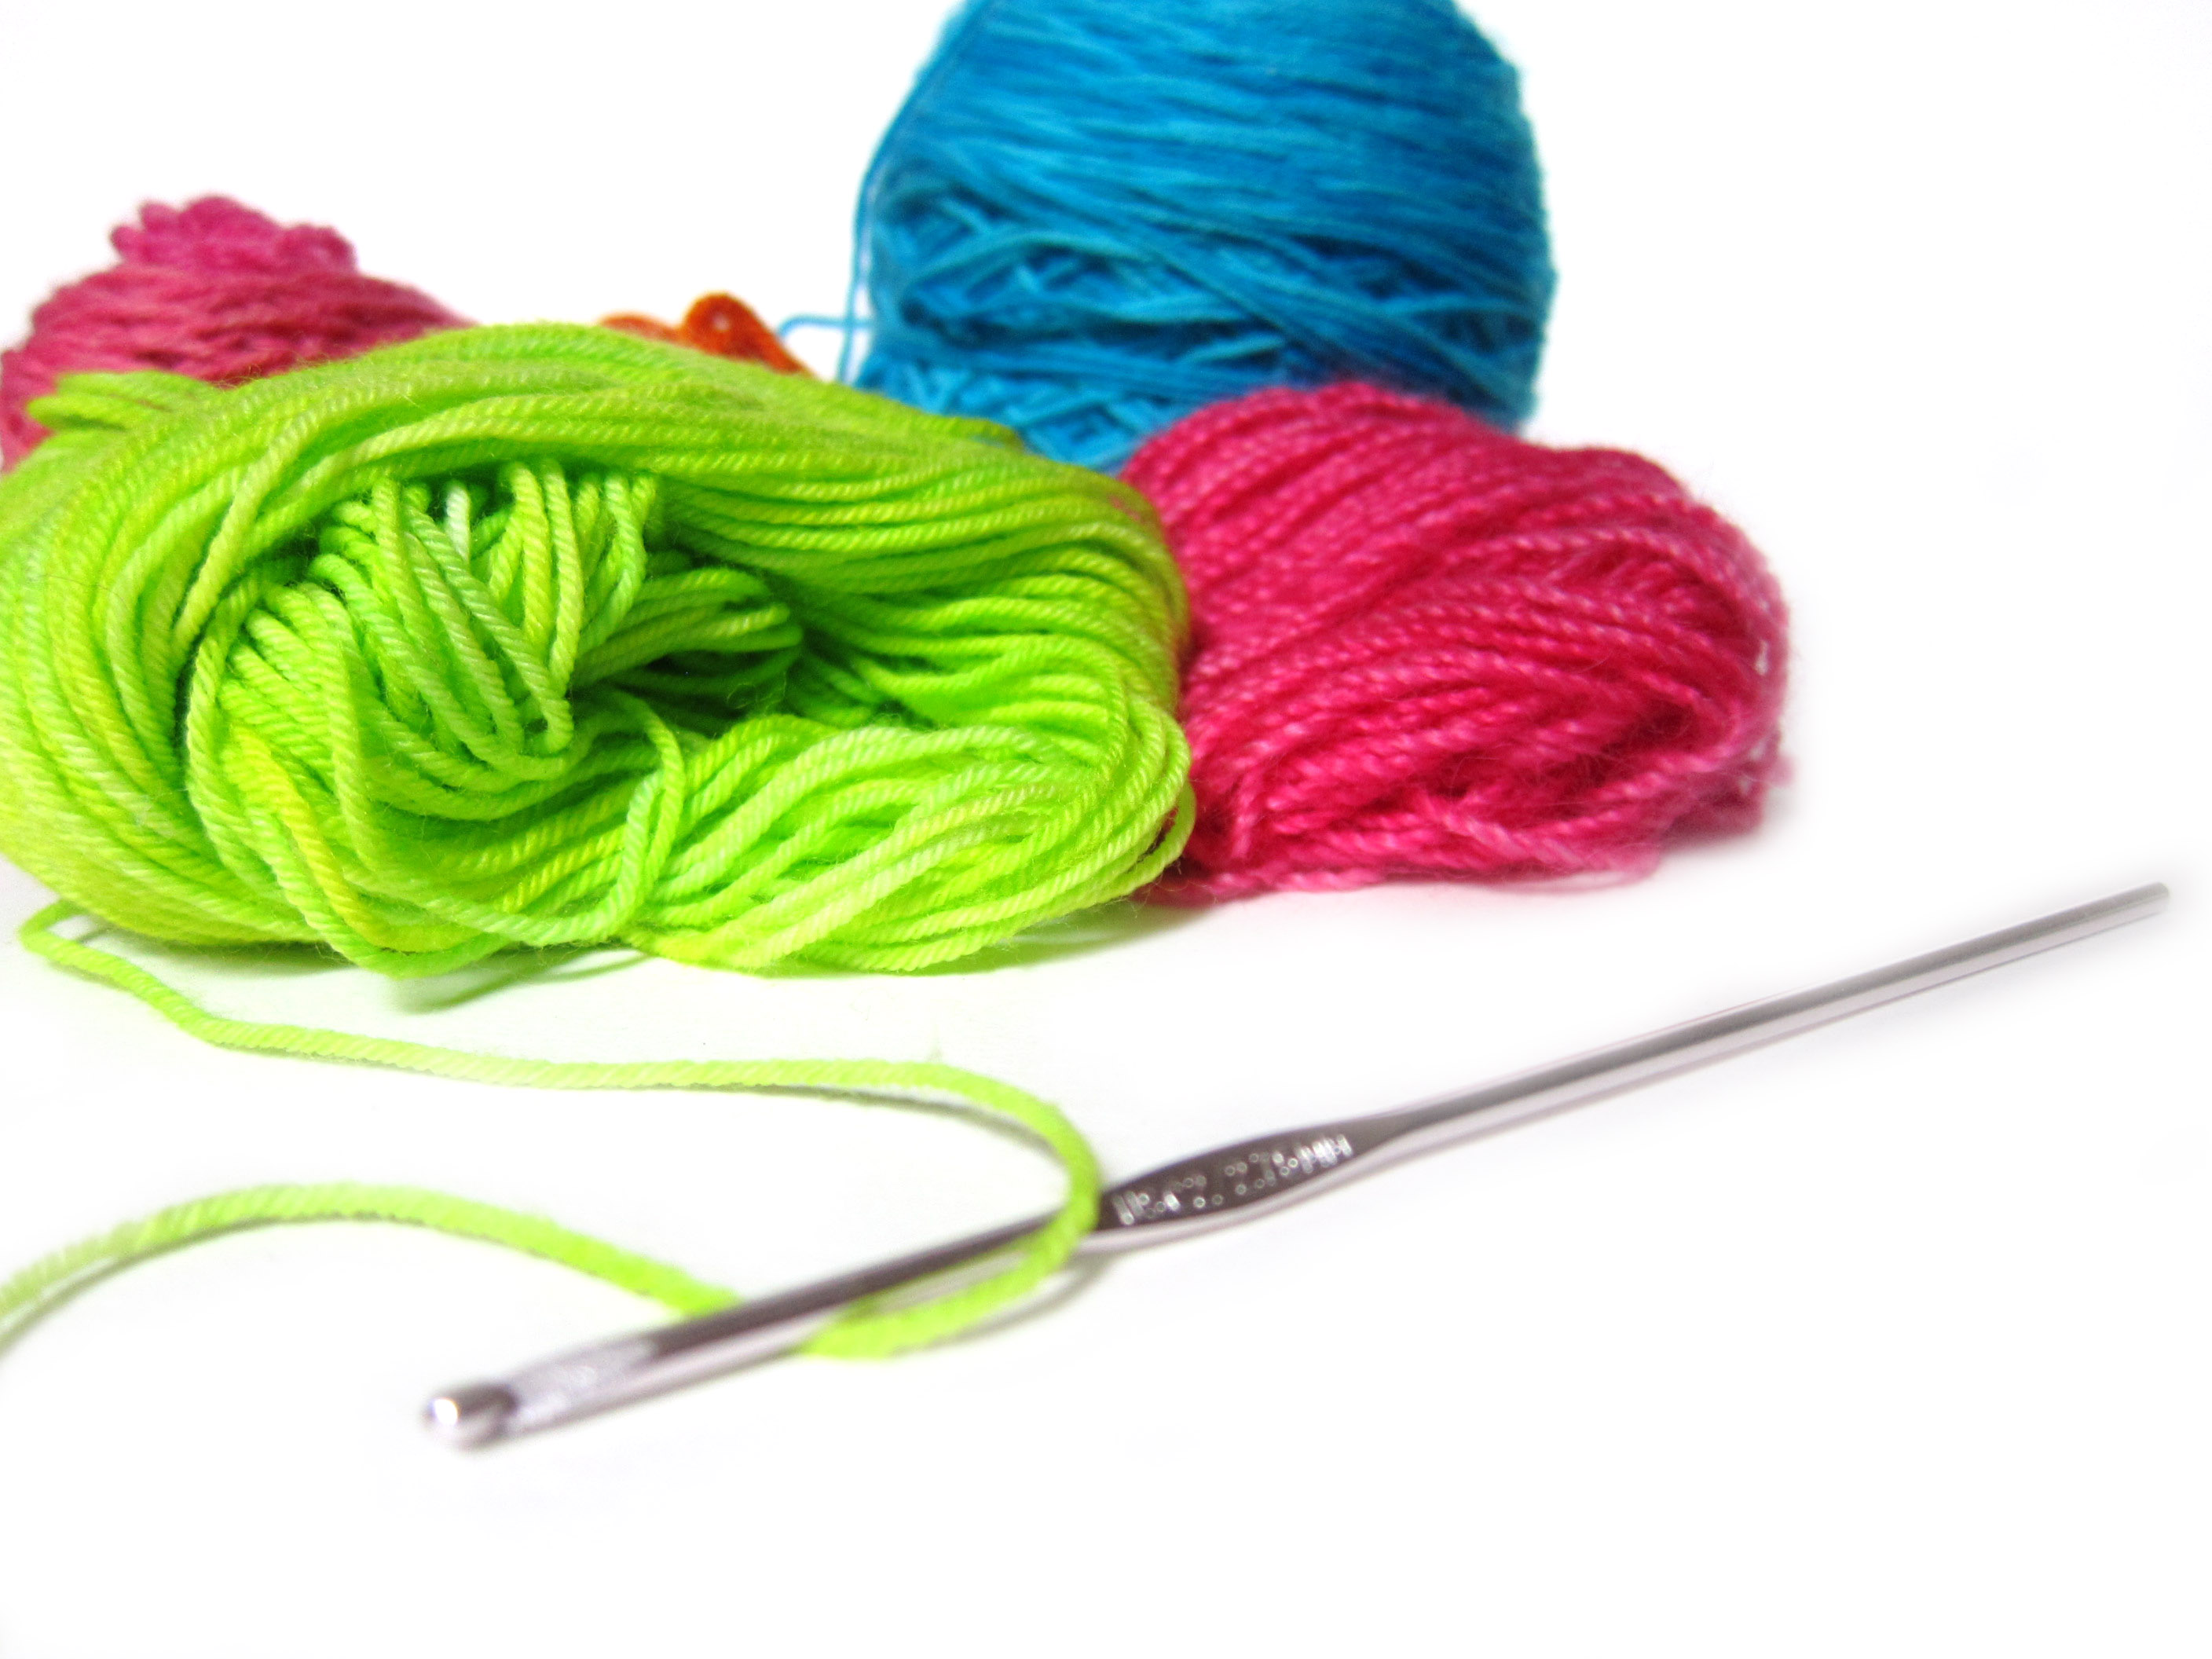 Crochet Yarn : Crochet Hook And Yarn Wallpaper Crochet Hook And Ball Of Yarn